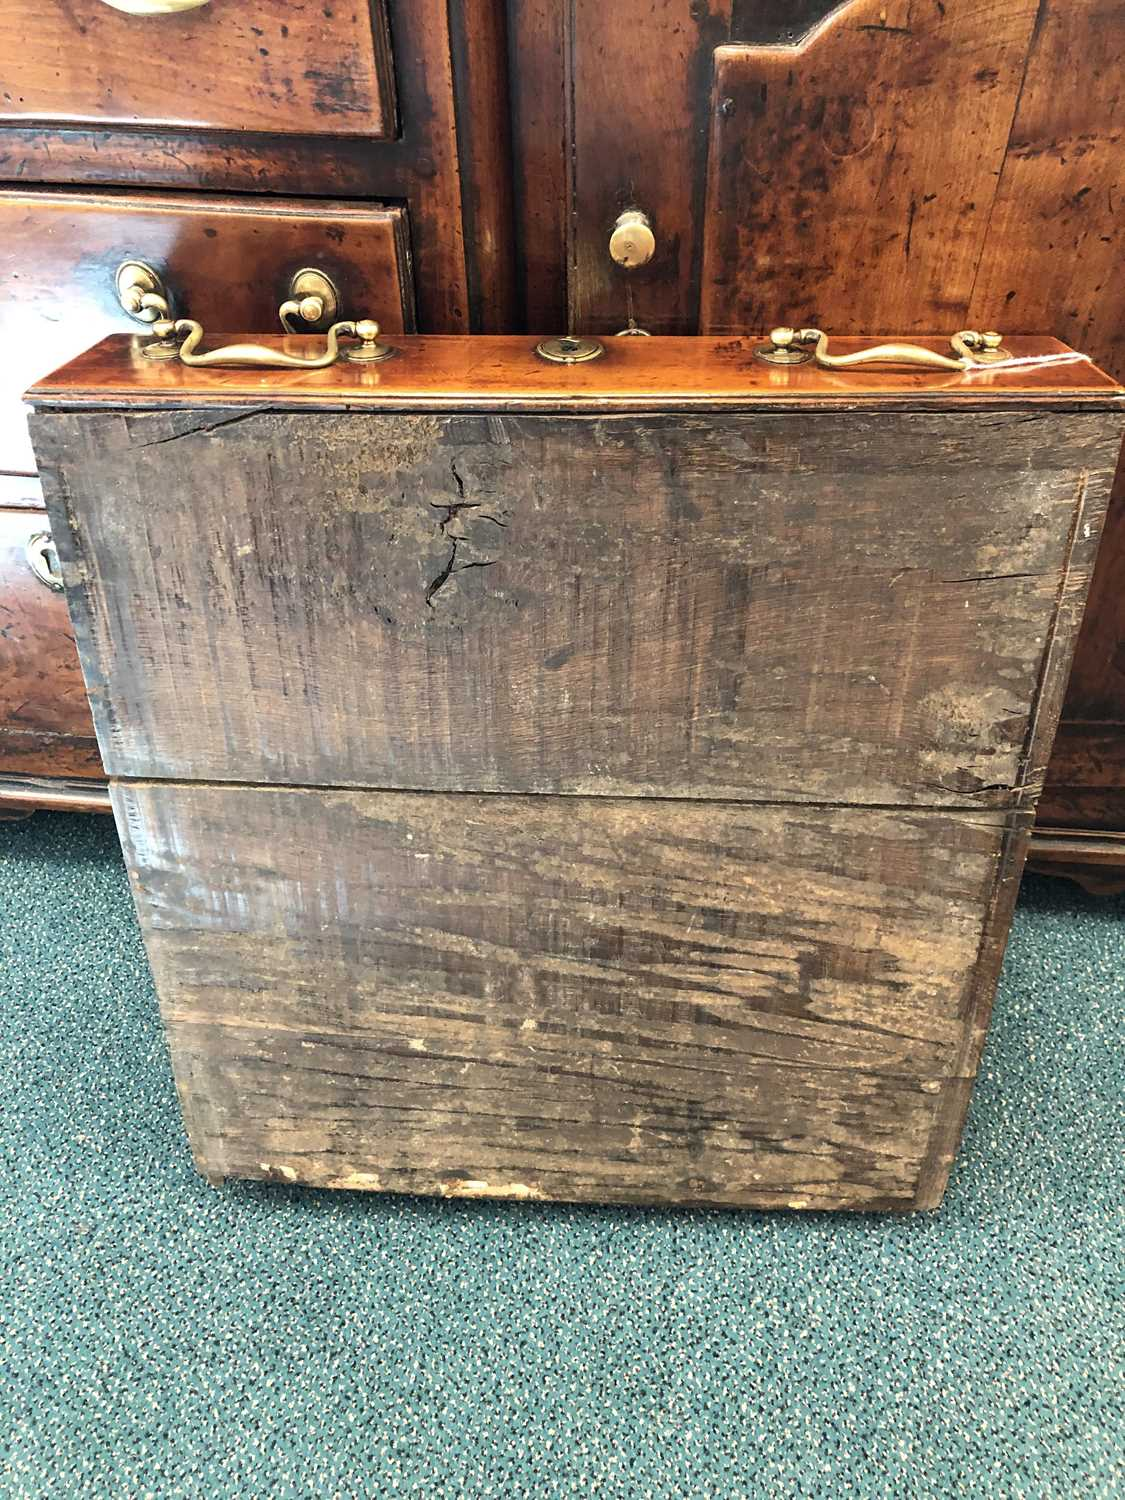 A late 18th century fruitwood or yew wood breakfront dresser, North Wales - Image 10 of 16